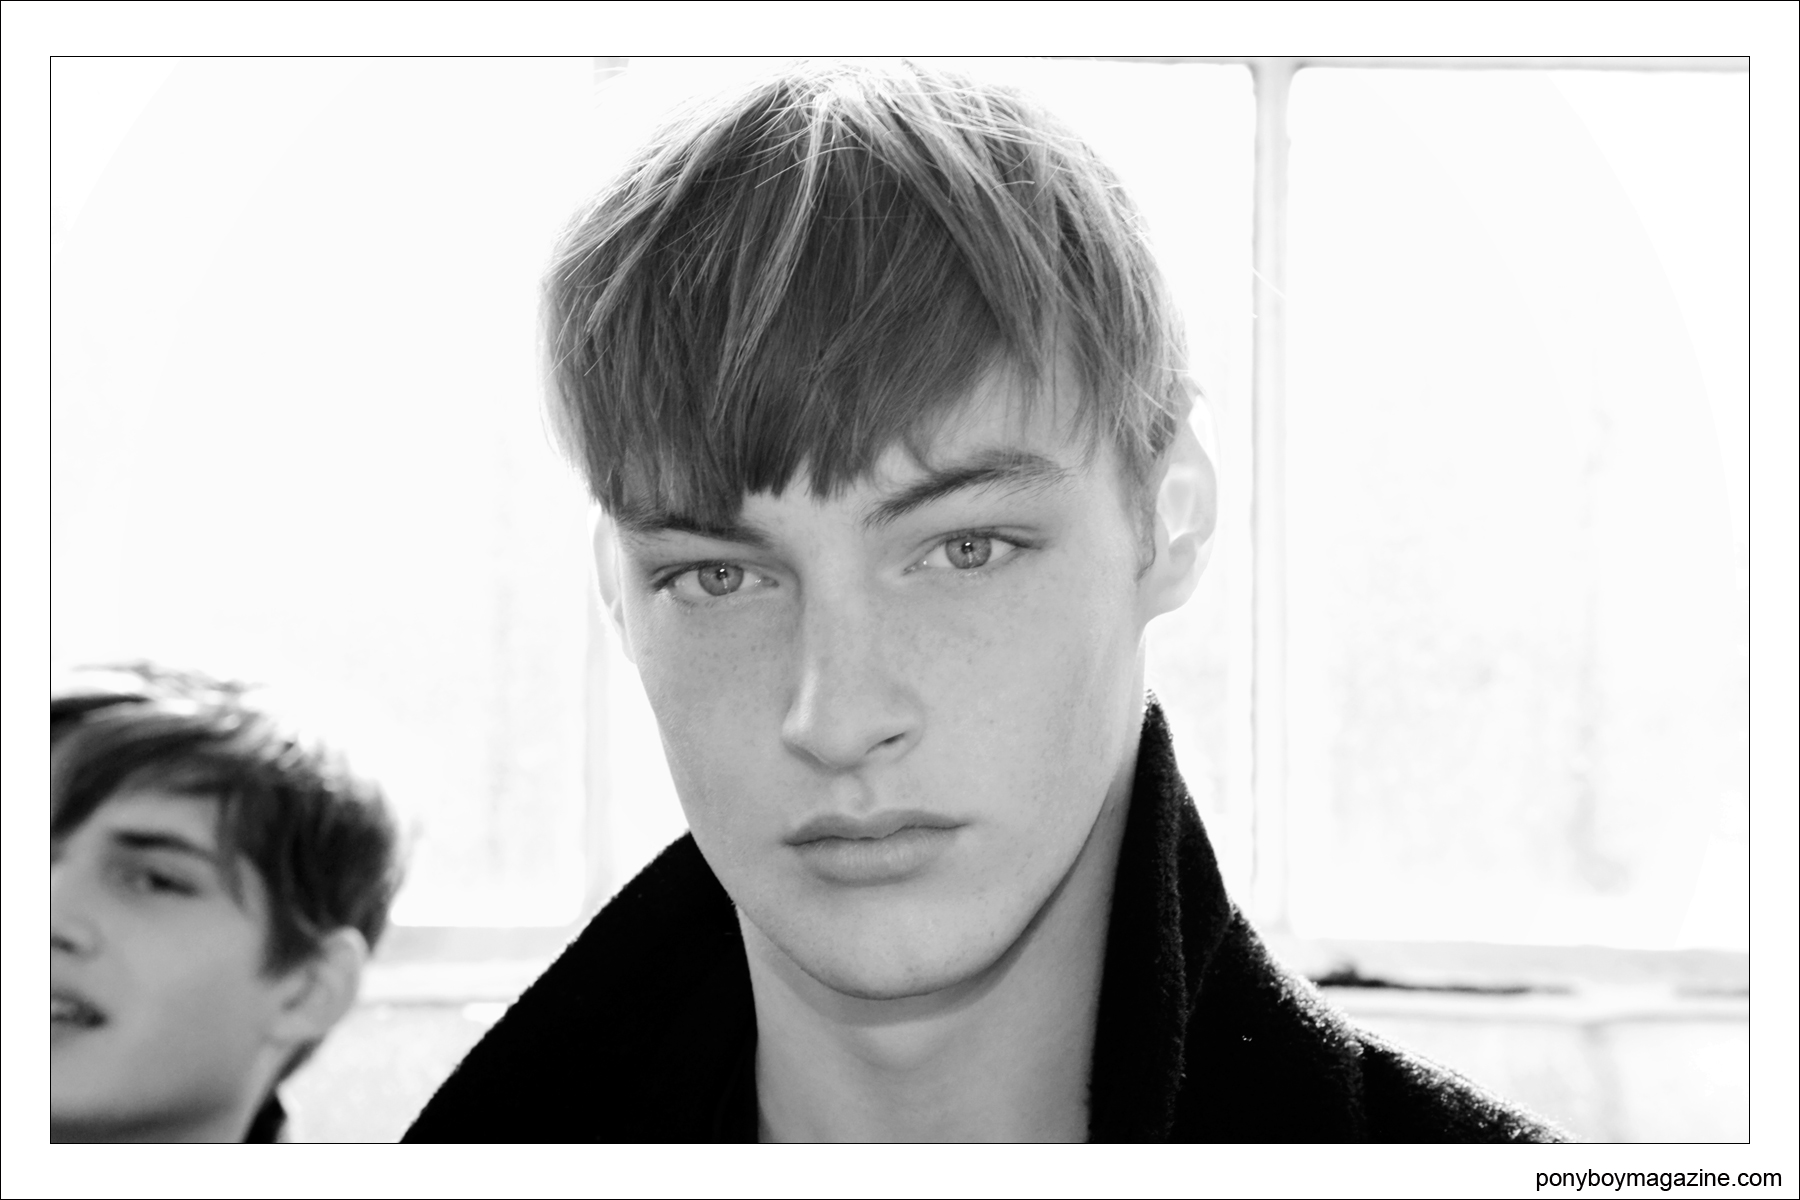 Male model backstage at the brilliant collection of Duckie Brown A/W 2014 show, photographed in New York City for Ponyboy Magazine.